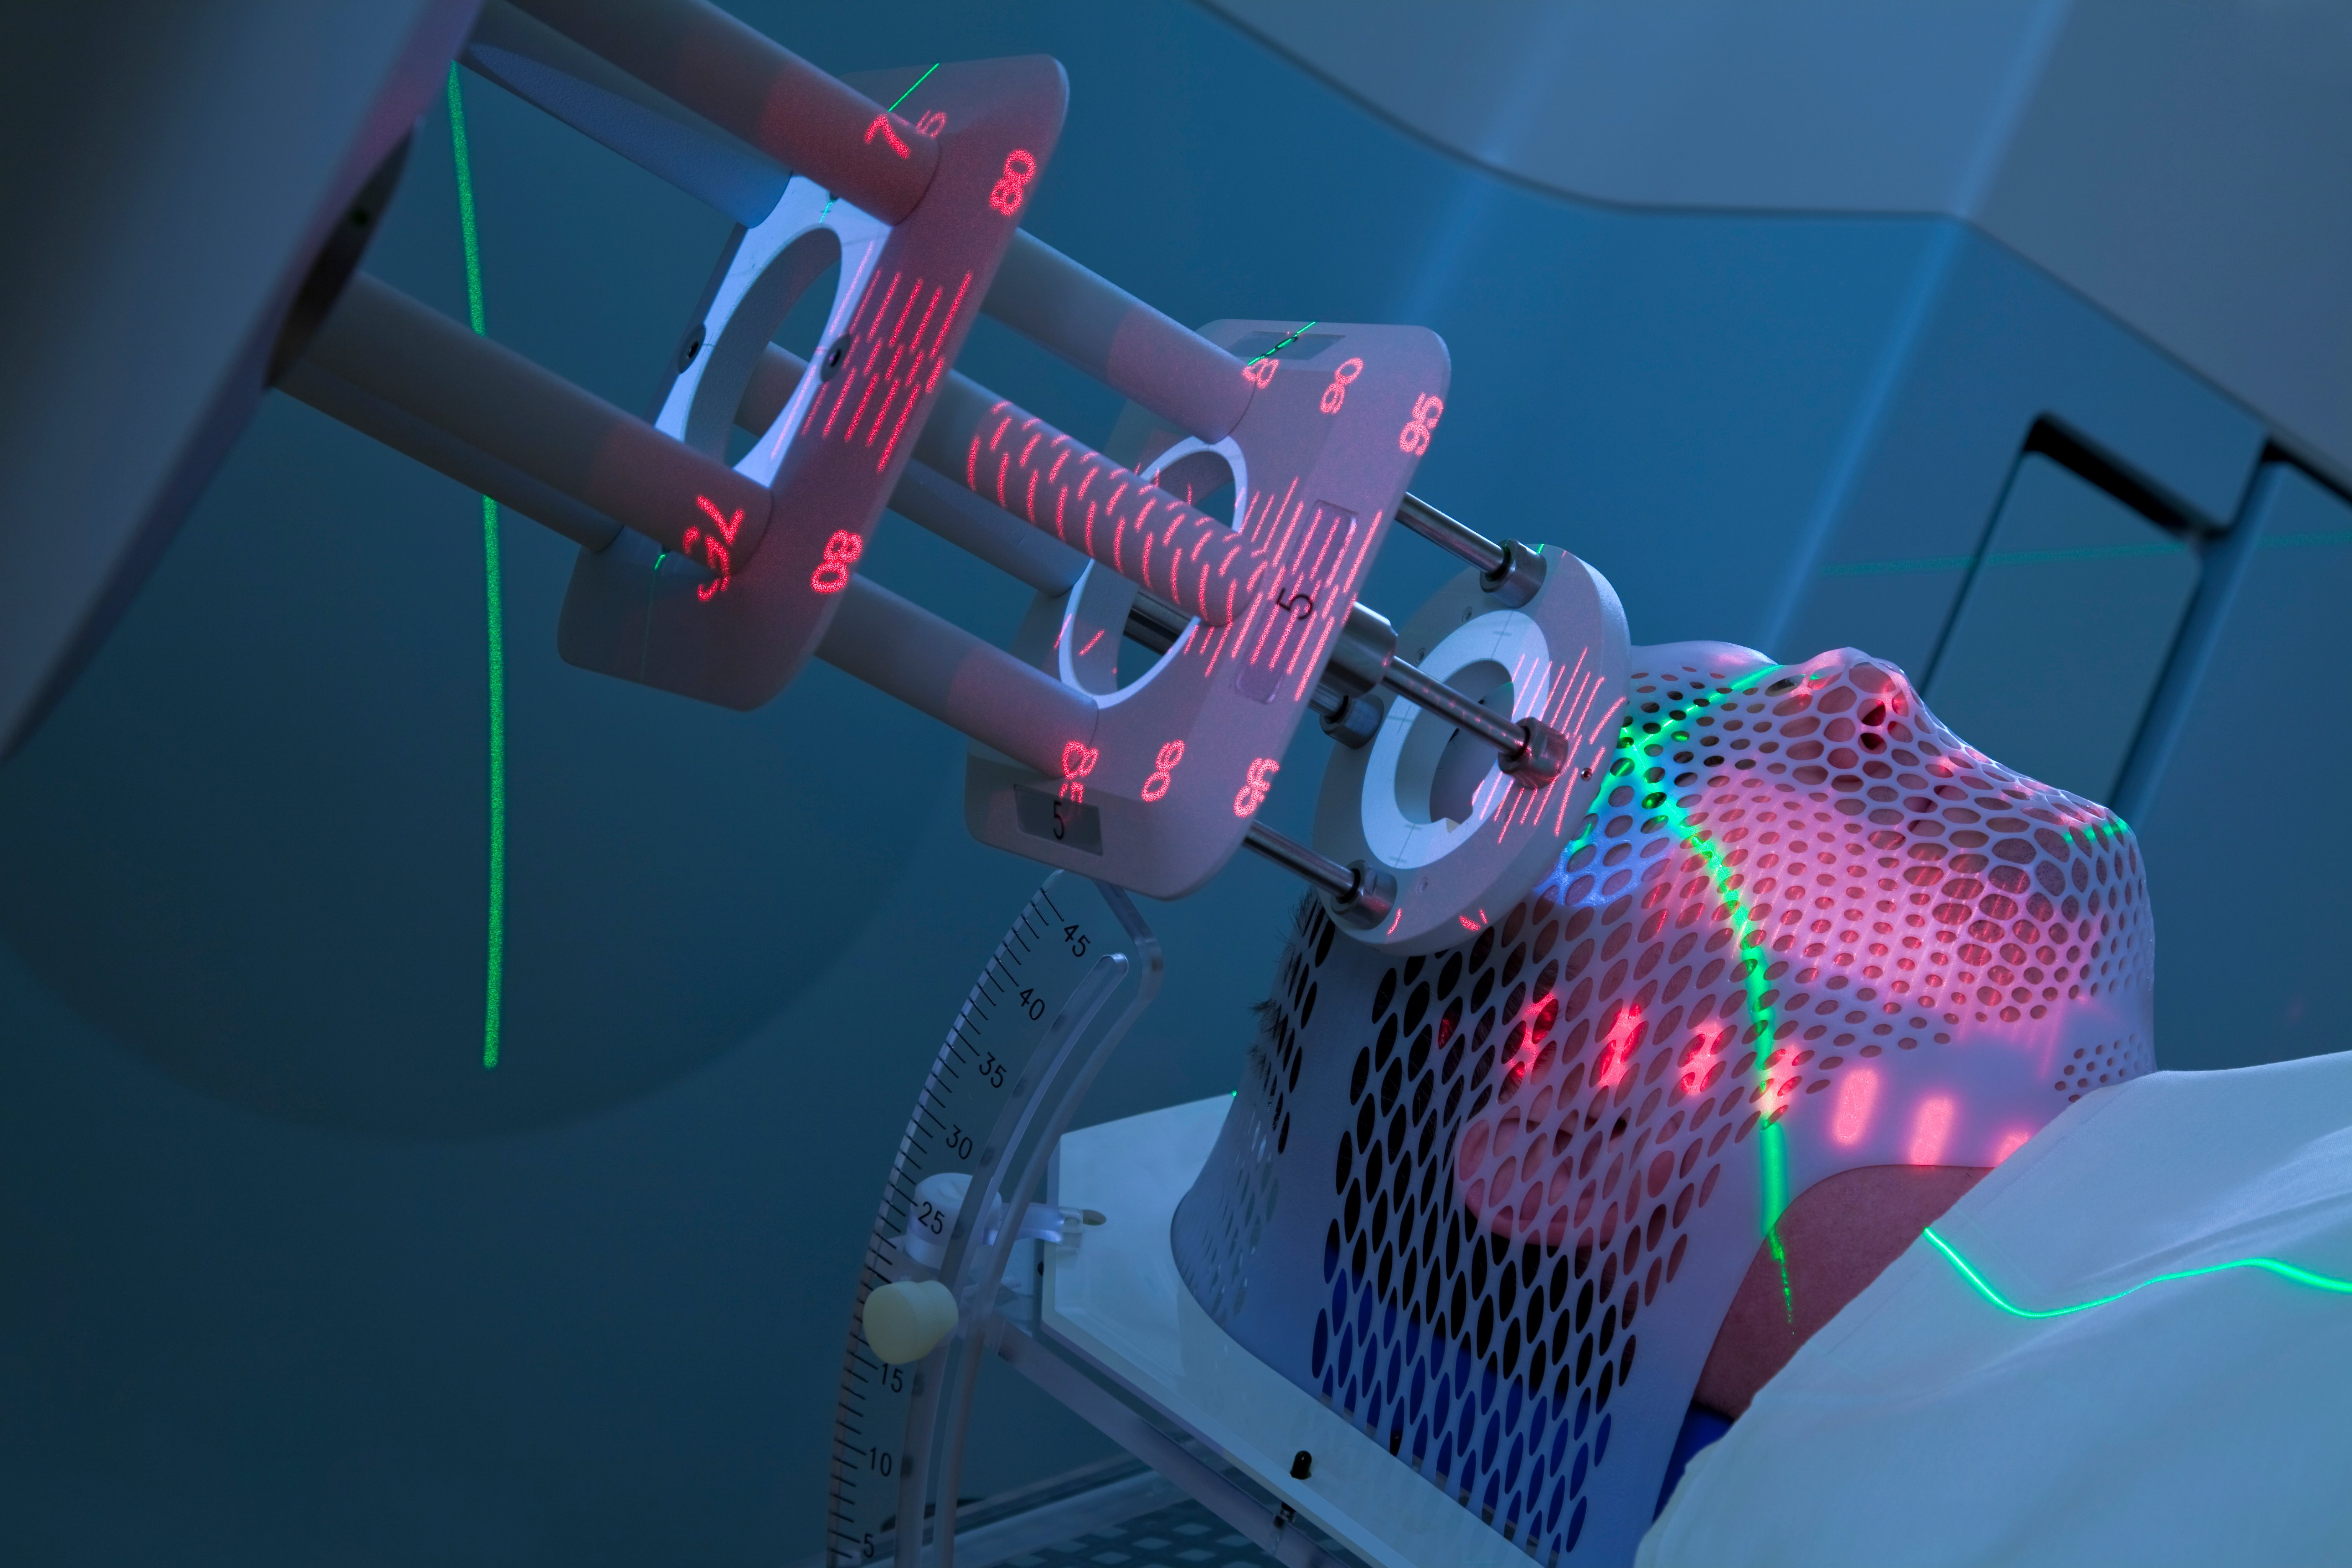 Proton therapy has evolved, and future predictions include smaller systems, more sophisticated proton dosimetry and devices that manipulate the proton beam